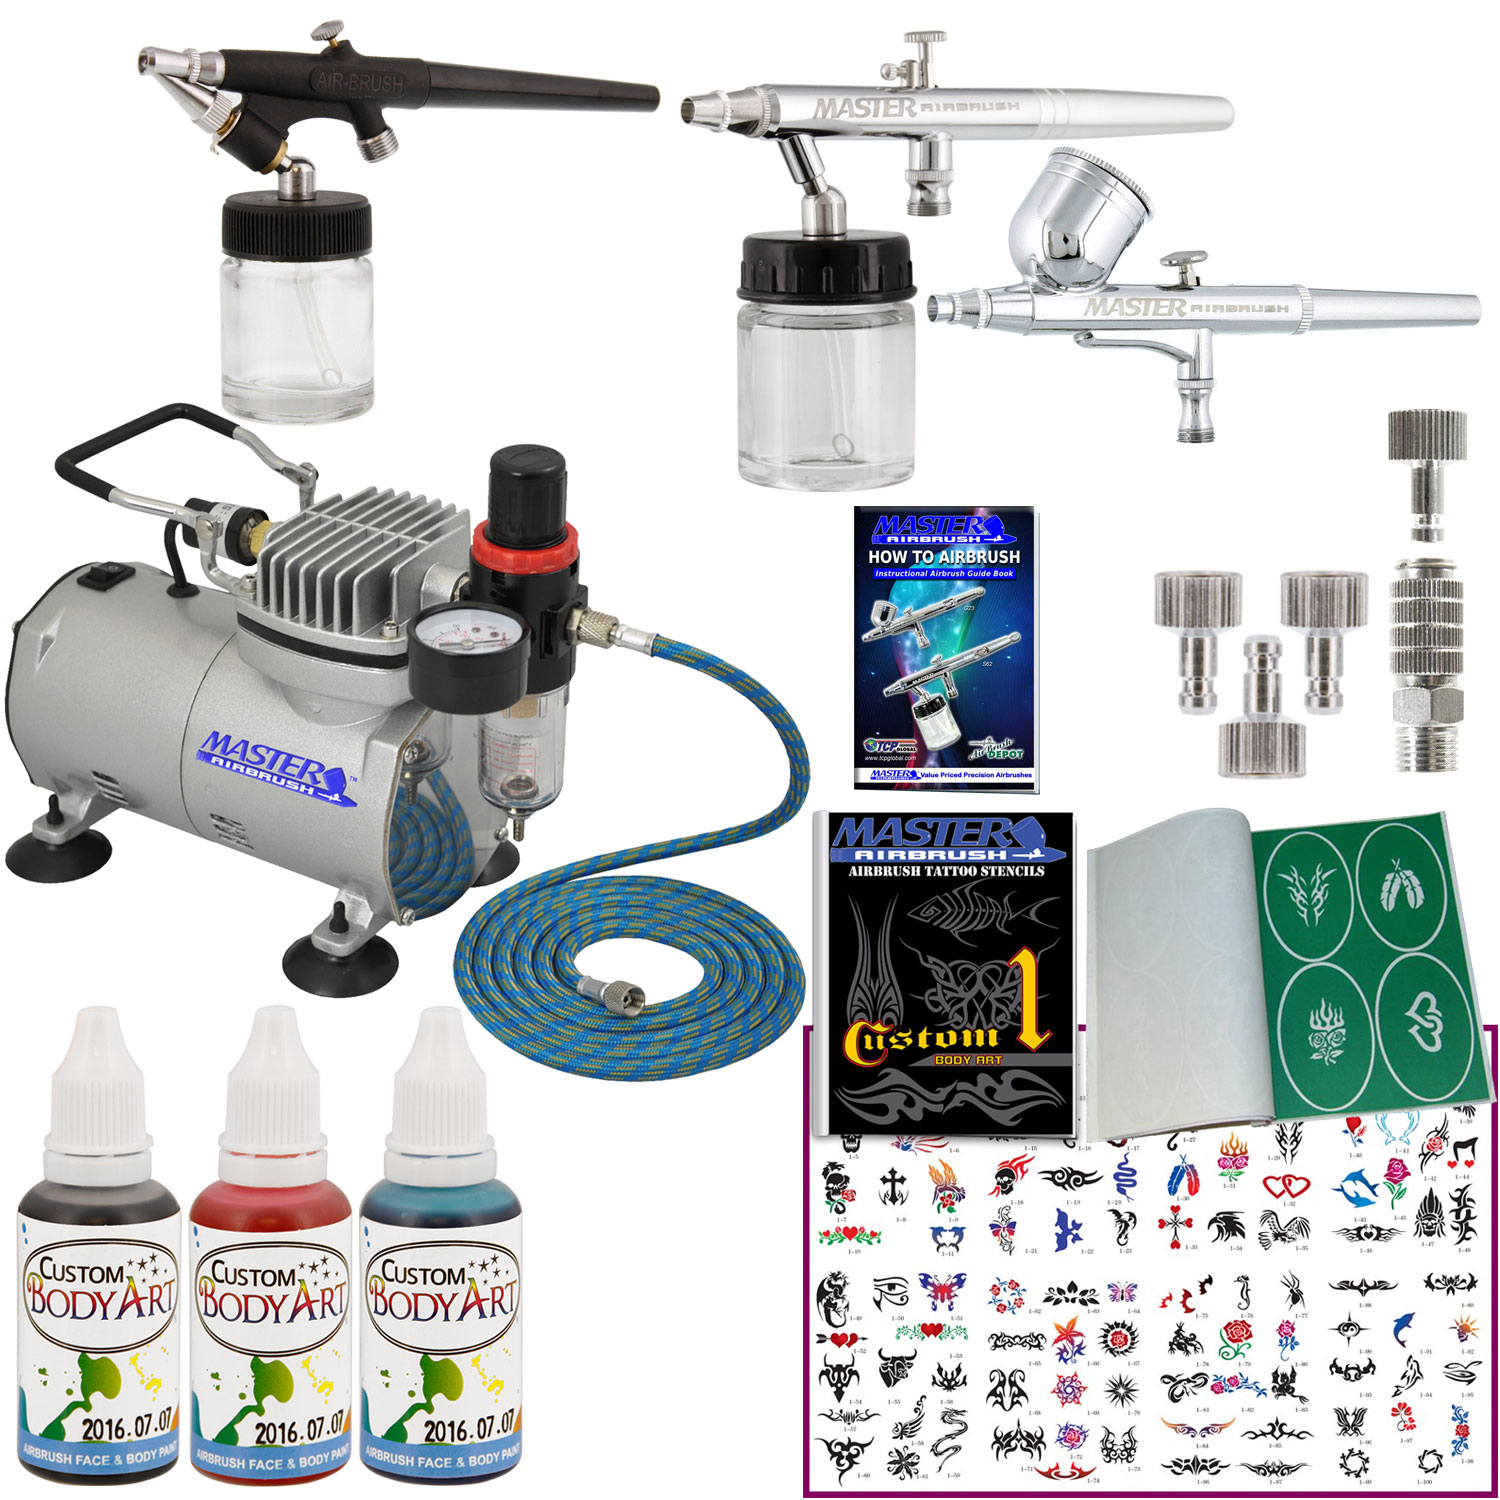 3 Airbrush Temporary Tattoo System Air Compressor Kit Body Ideas And Designs